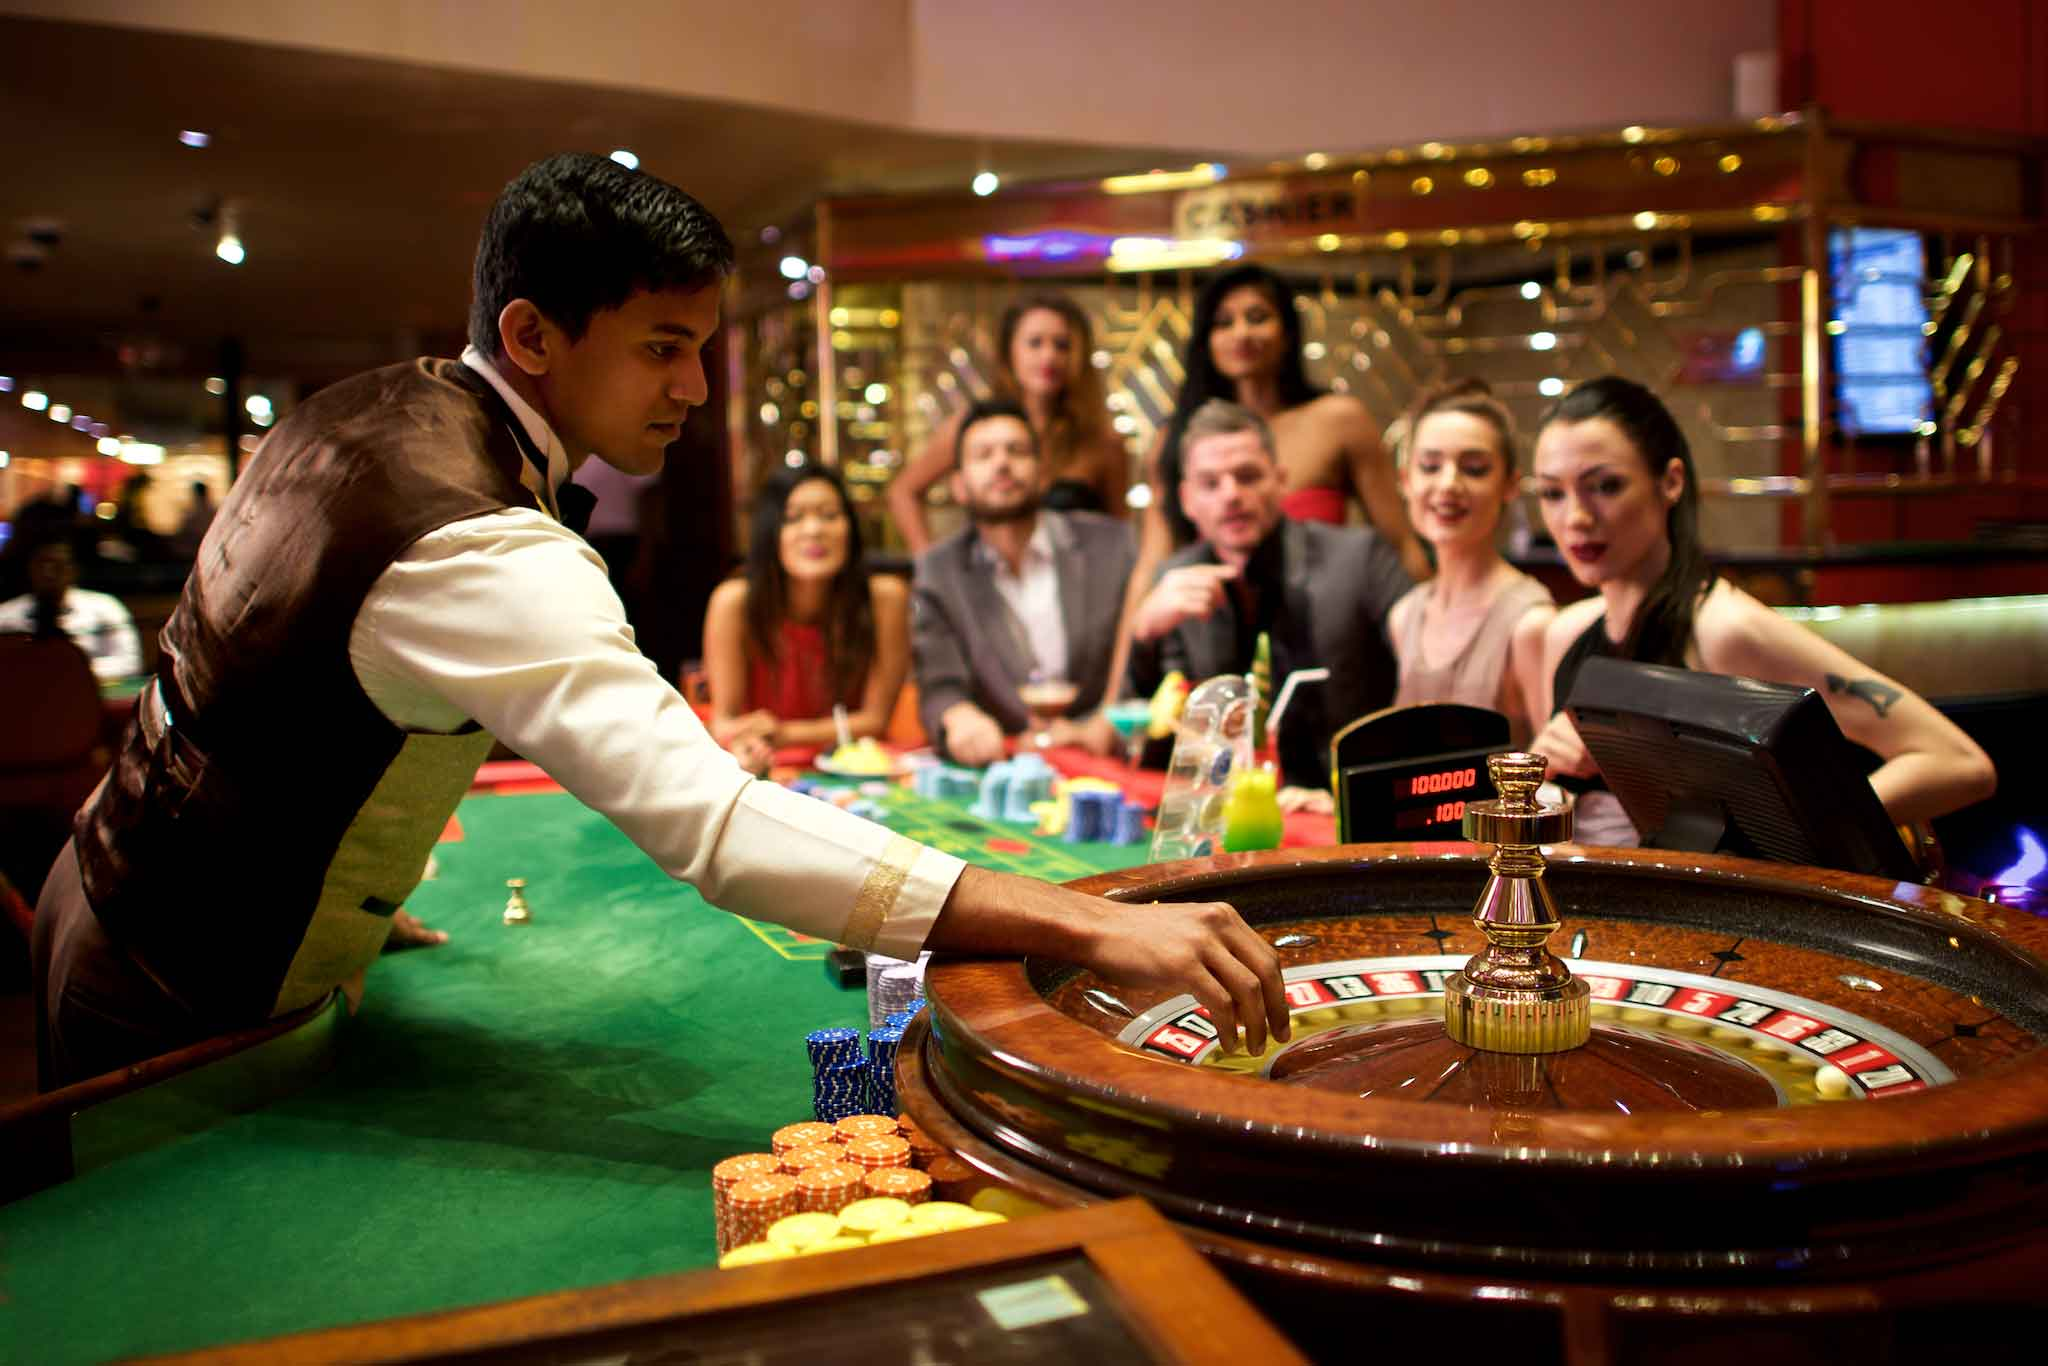 What are the facilities you can get at online casinos?